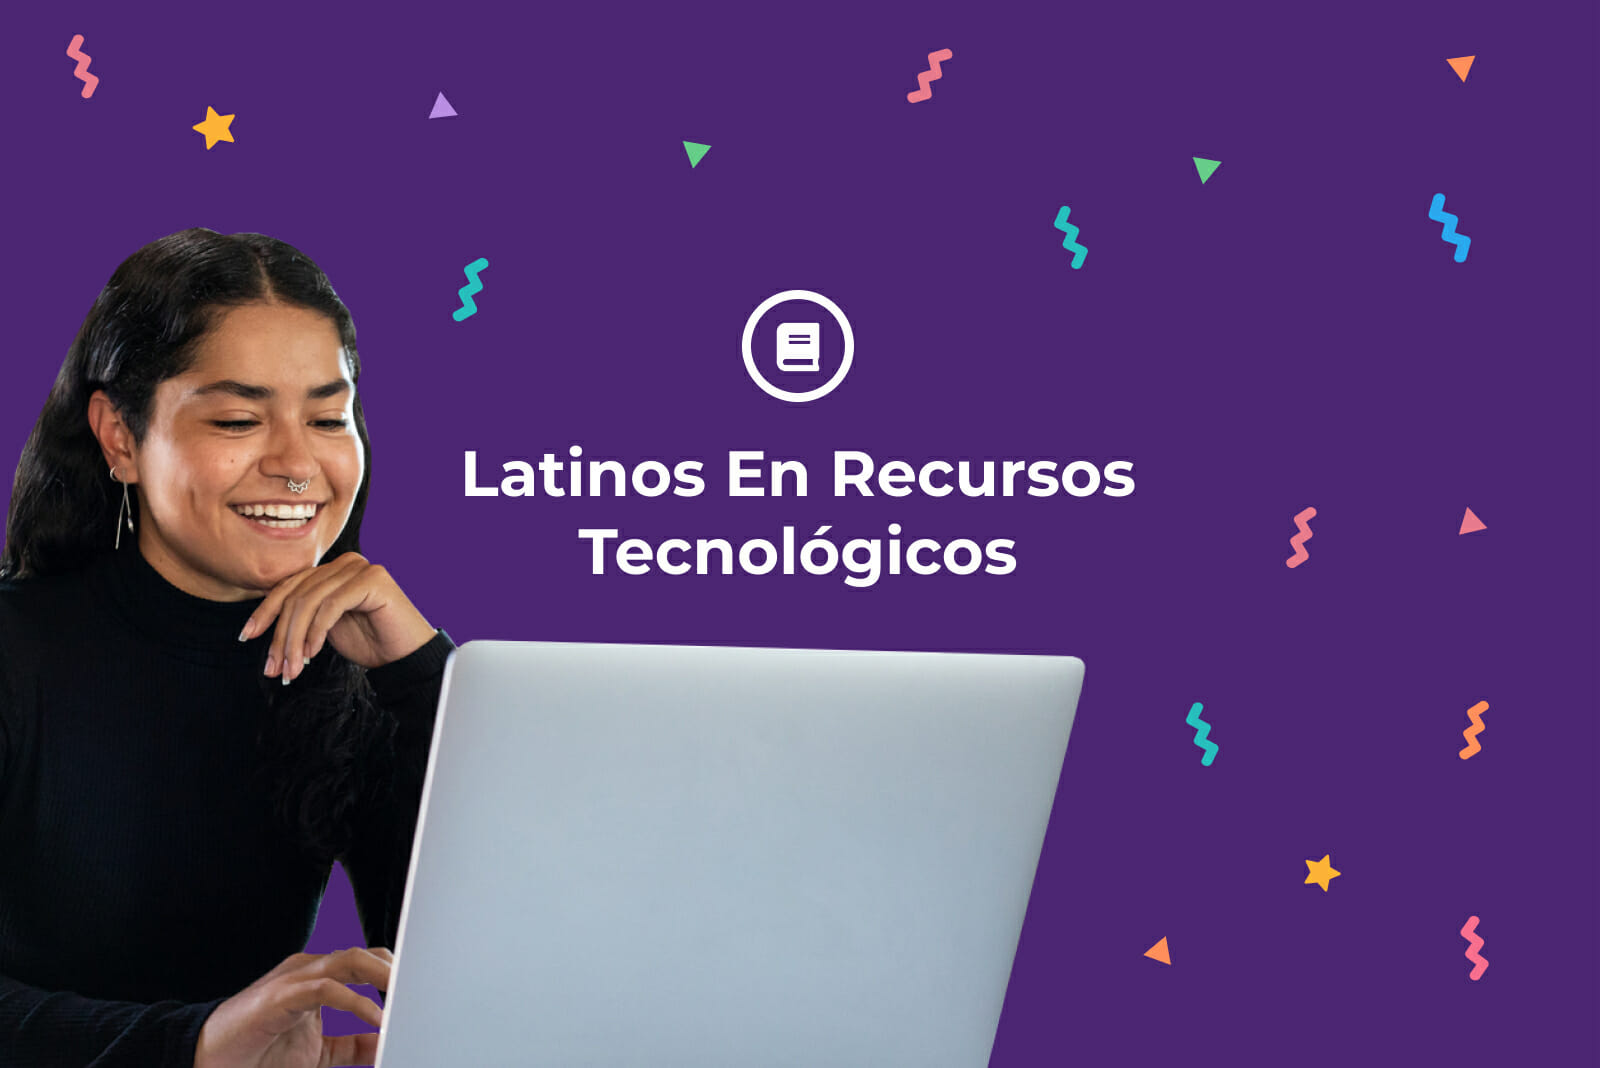 Latinx woman using a laptop in front of a purple background with confetti